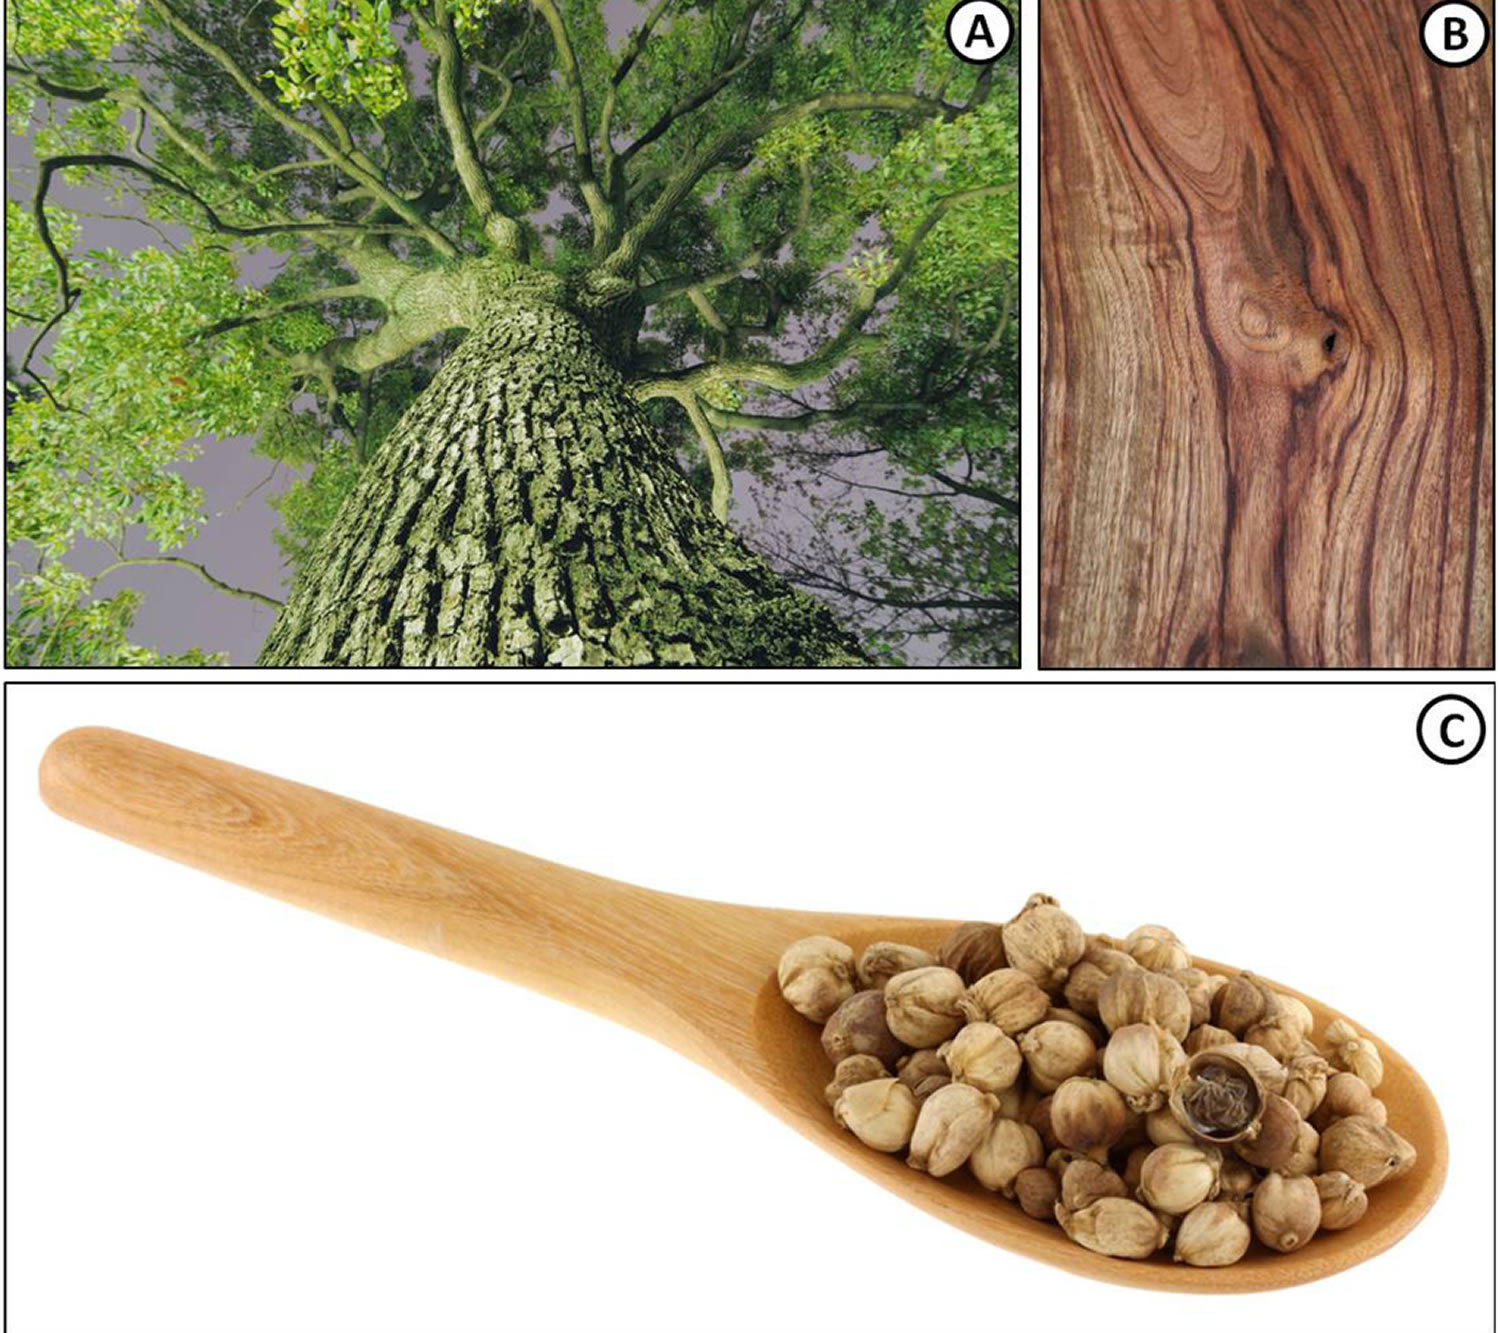 camphor tree, wood and seeds